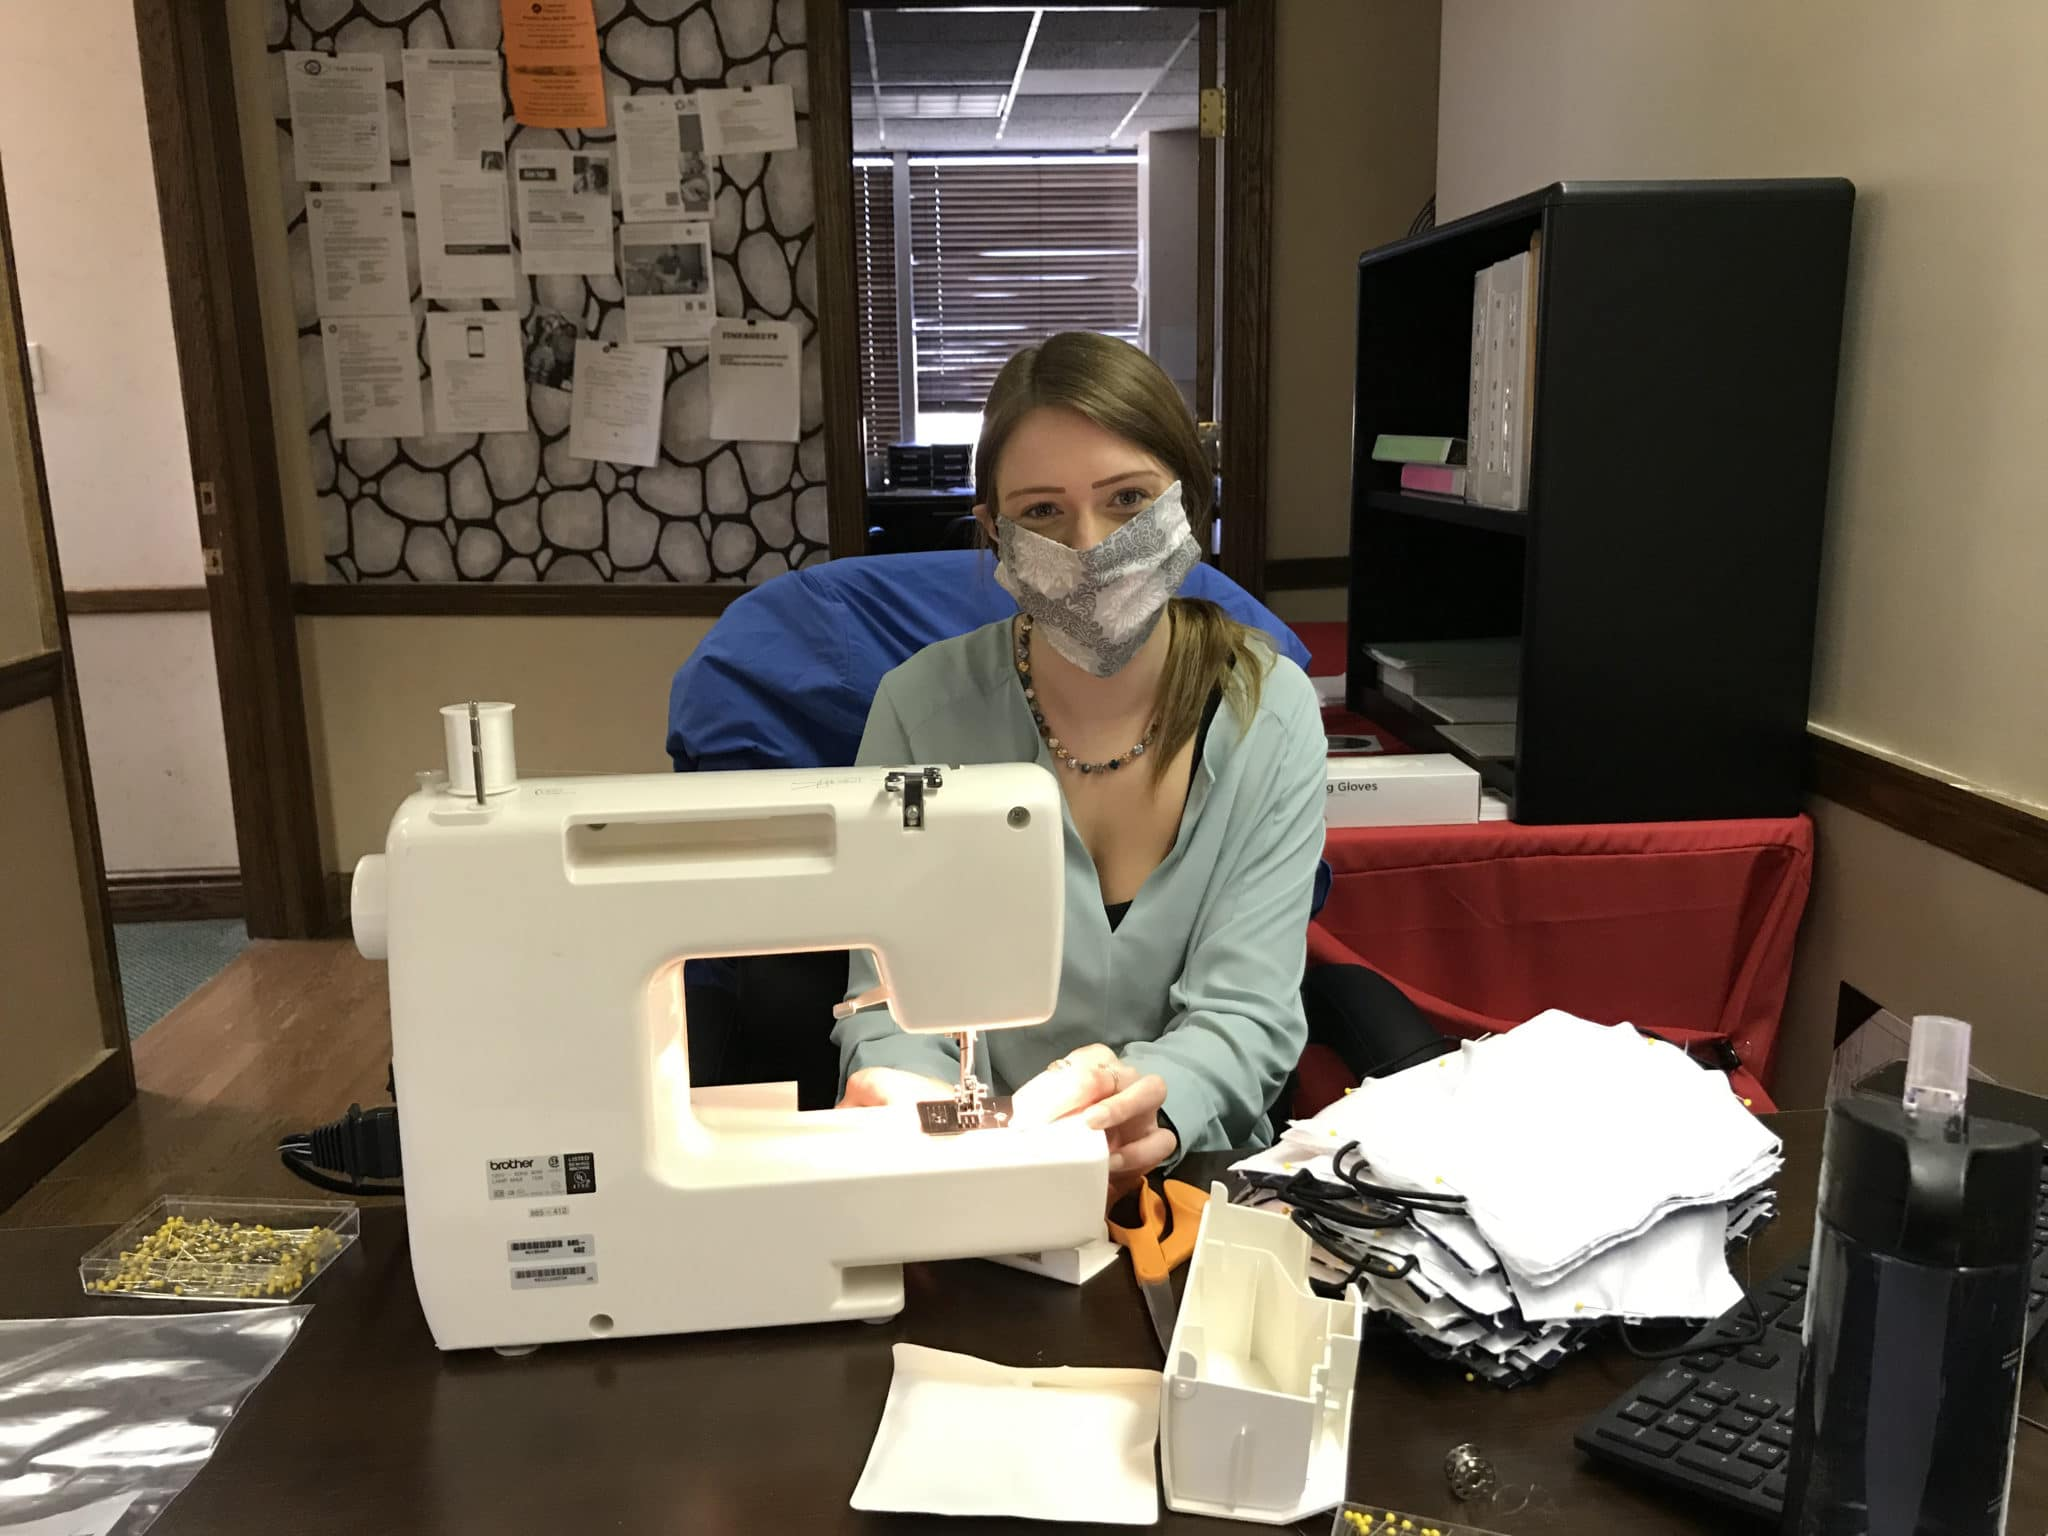 Brooke Smith, the new Administrative Assistant in Washington, PA at her sewing machine sewing masks